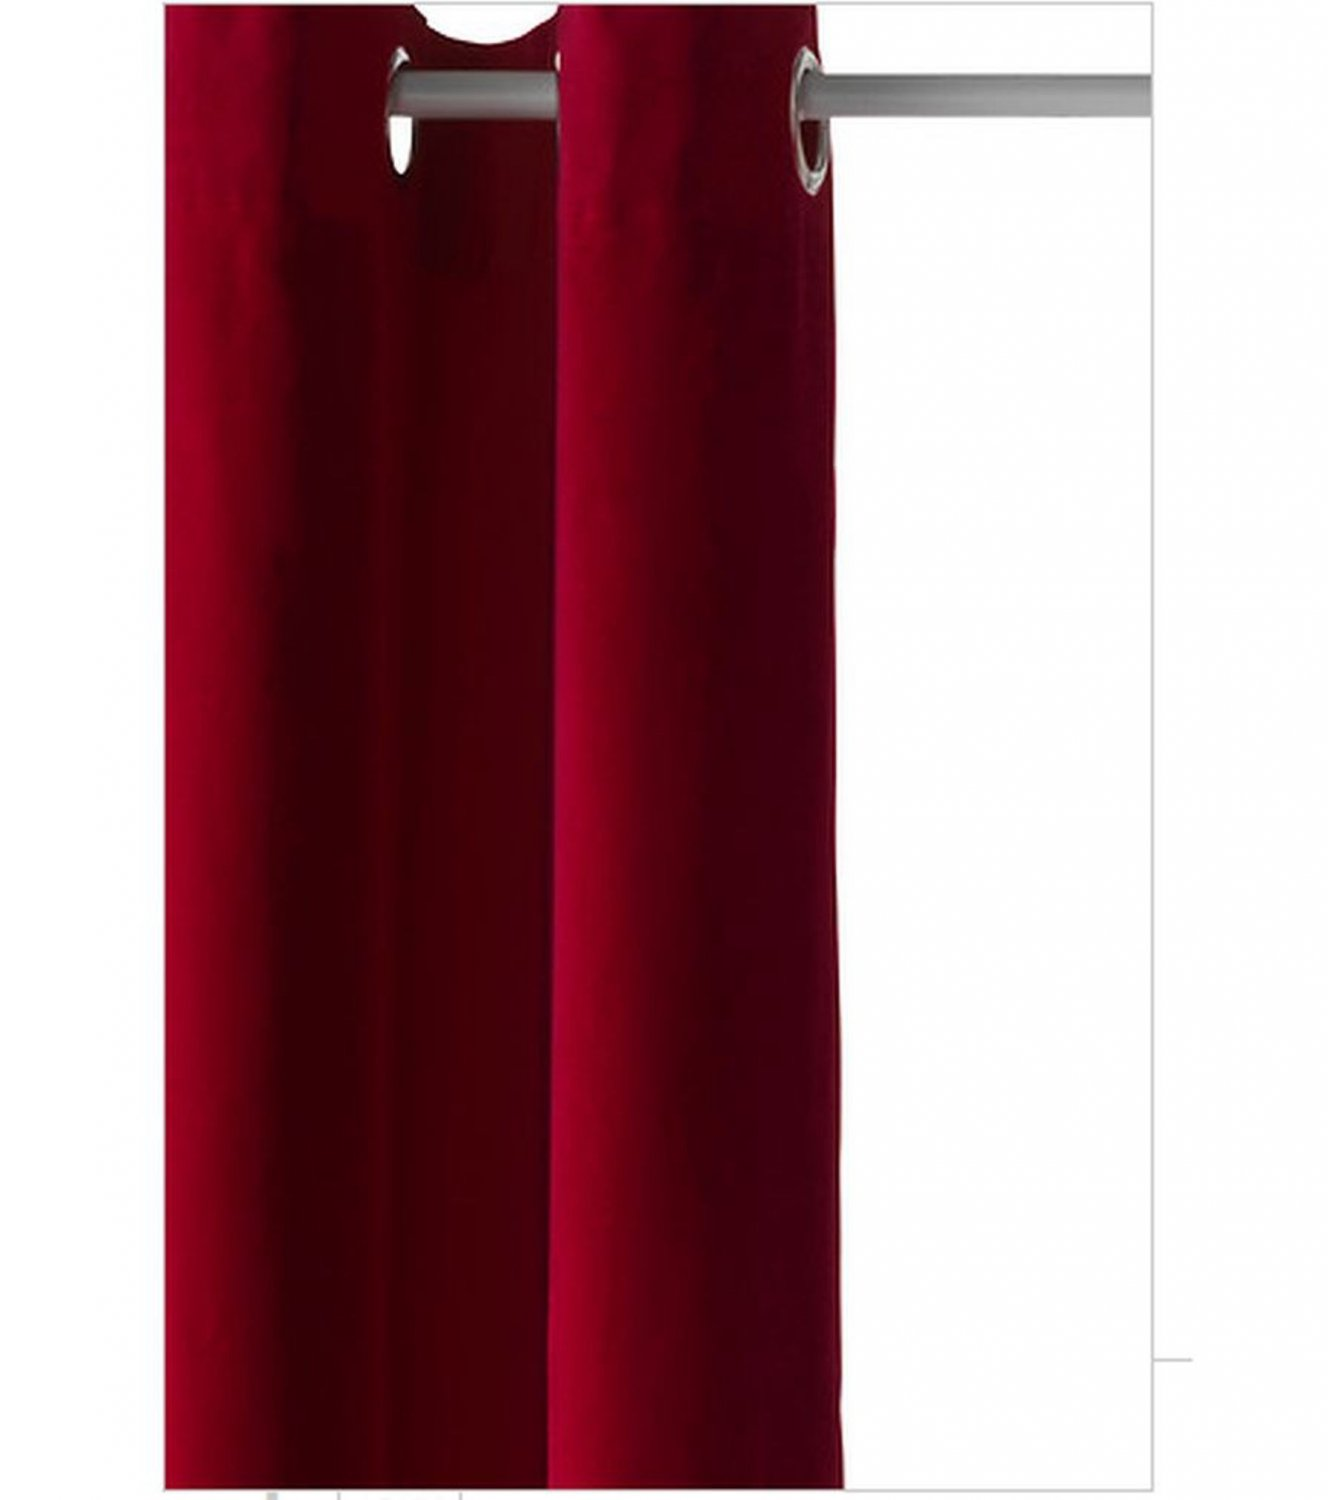 Ikea Sanela Curtains Drapes 2 Panels Red Velvet 98 Quot Grommets